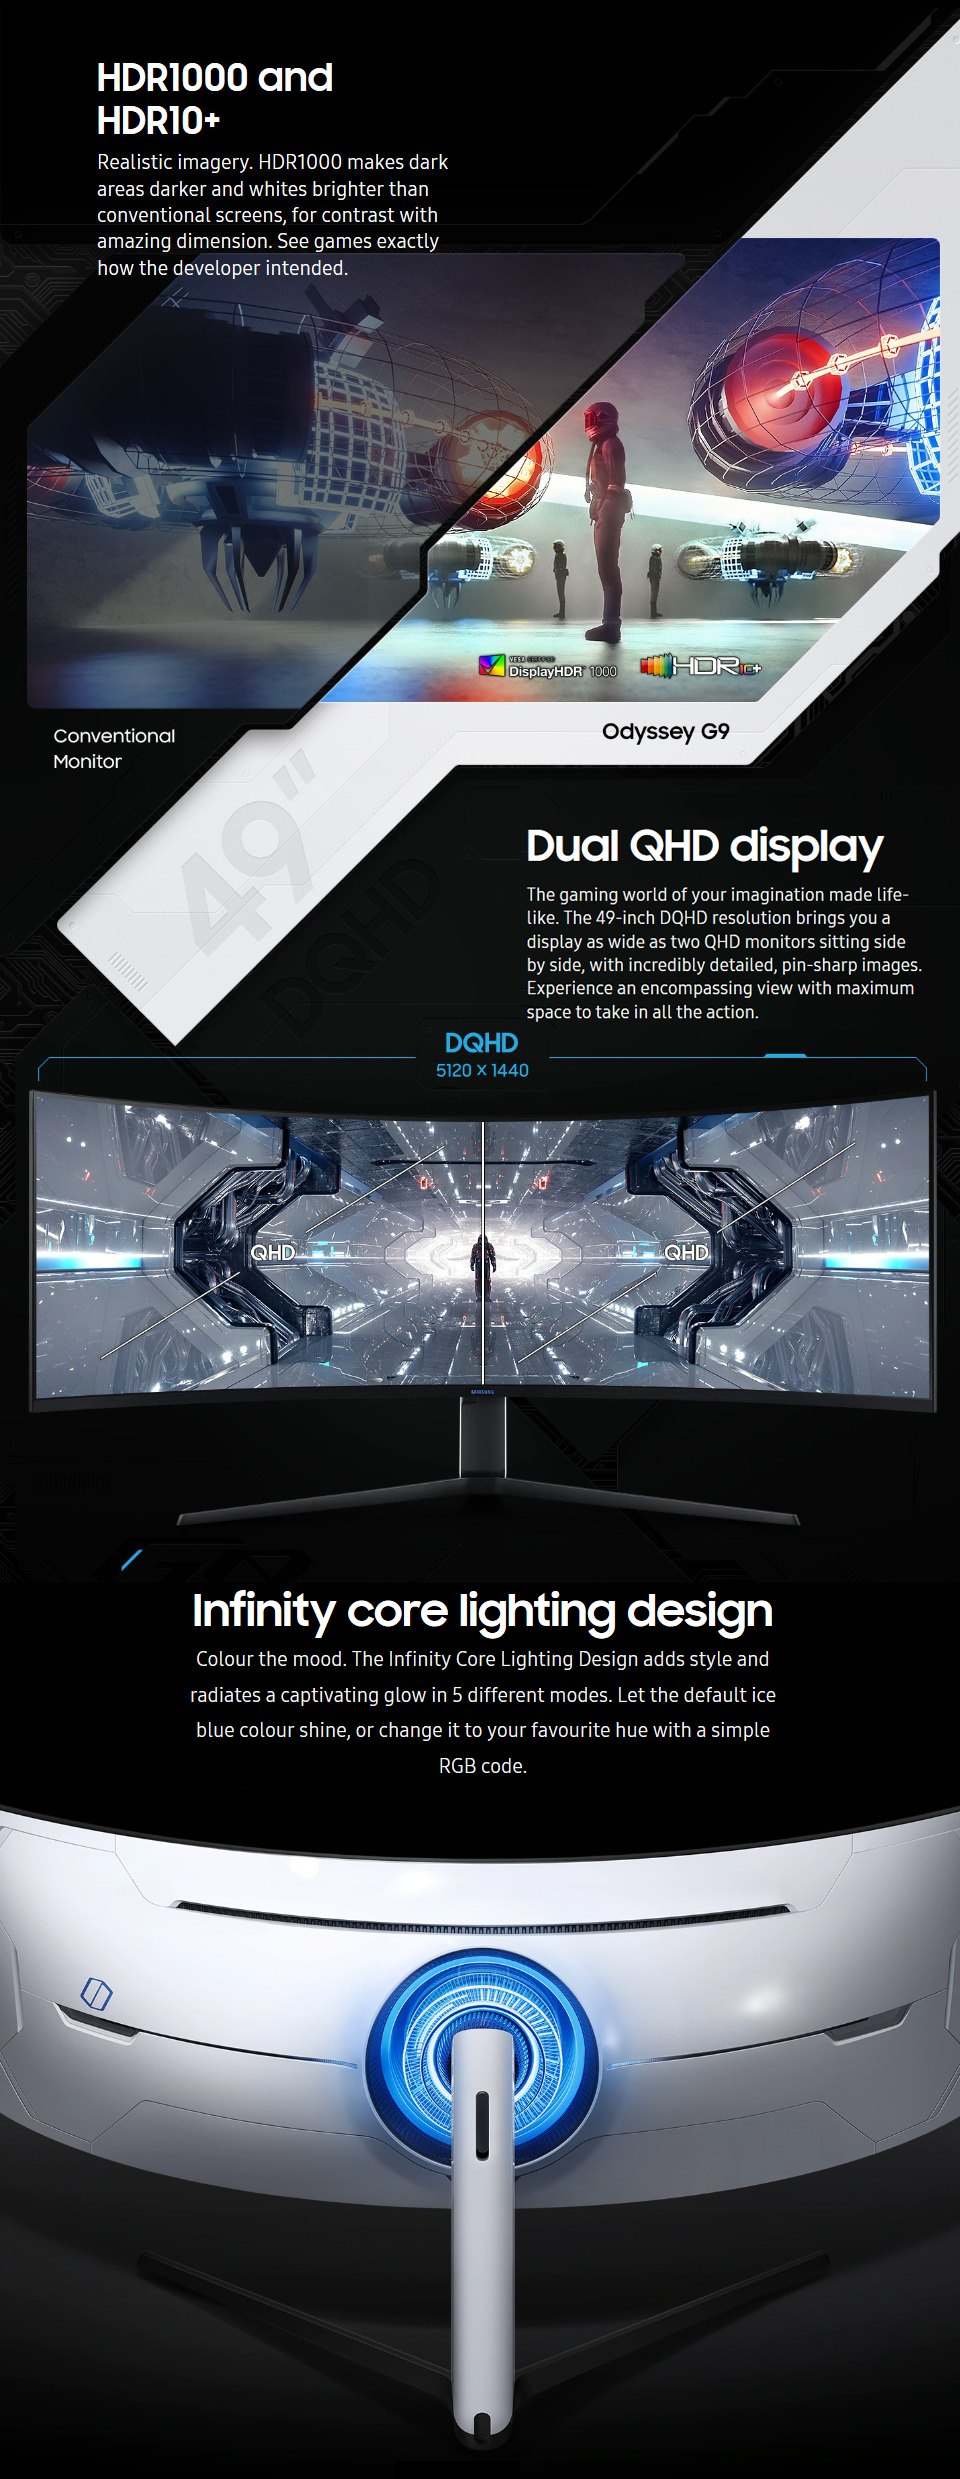 Samsung Odyssey G9 DQHD 240Hz FreeSync QLED Curved 49in Monitor features 2